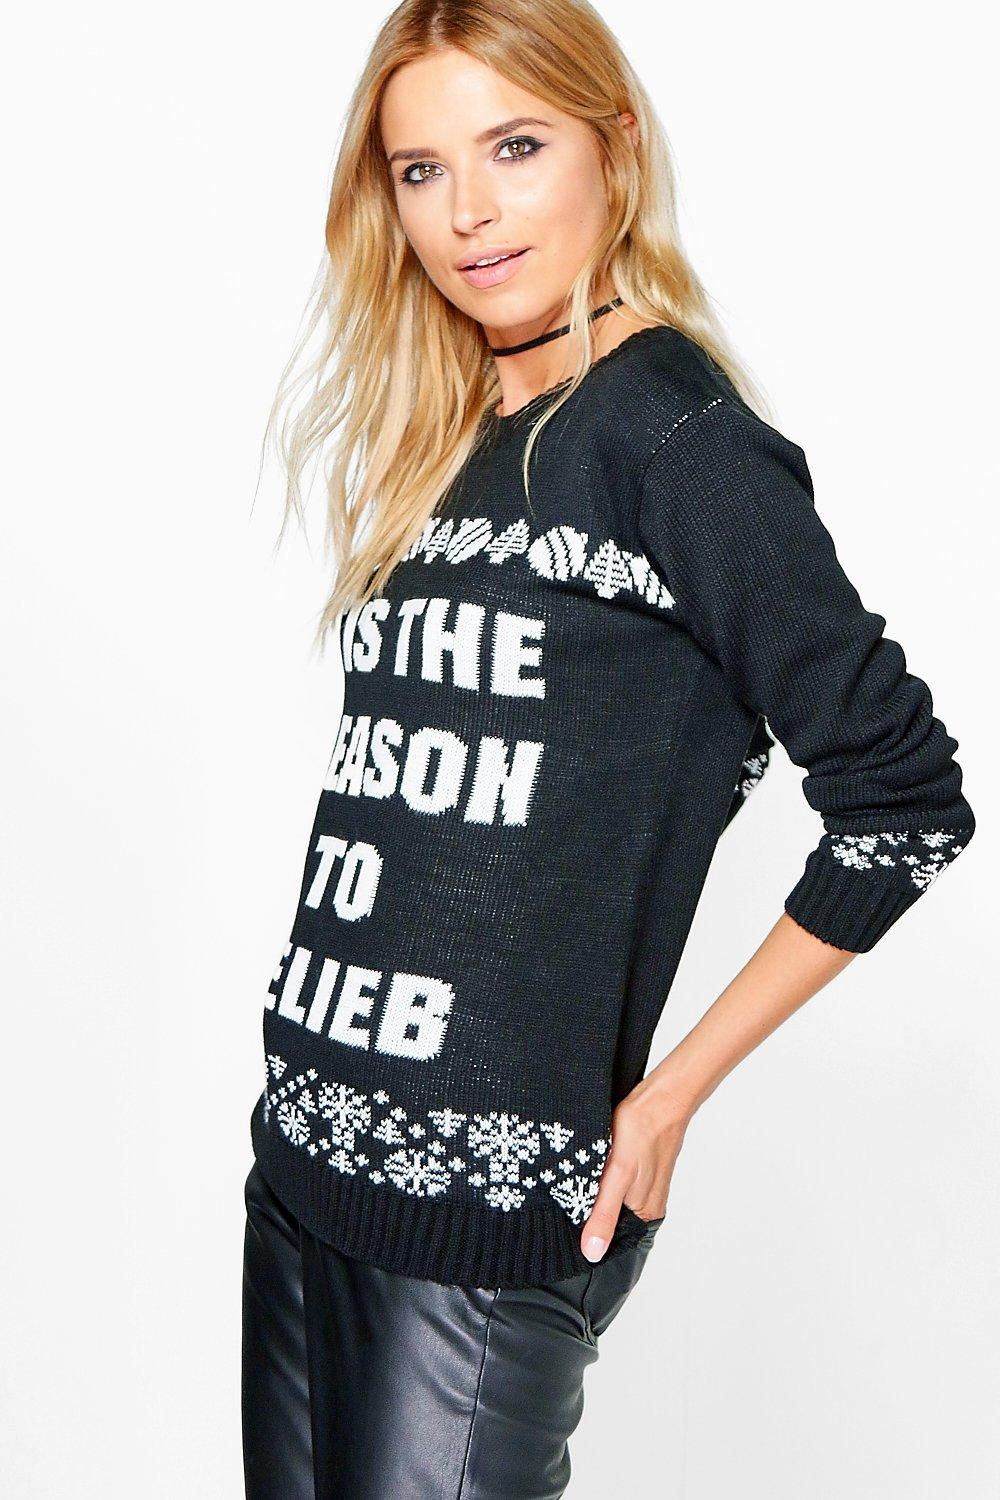 Maisie Tis The Season To Belieb Christmas Jumper